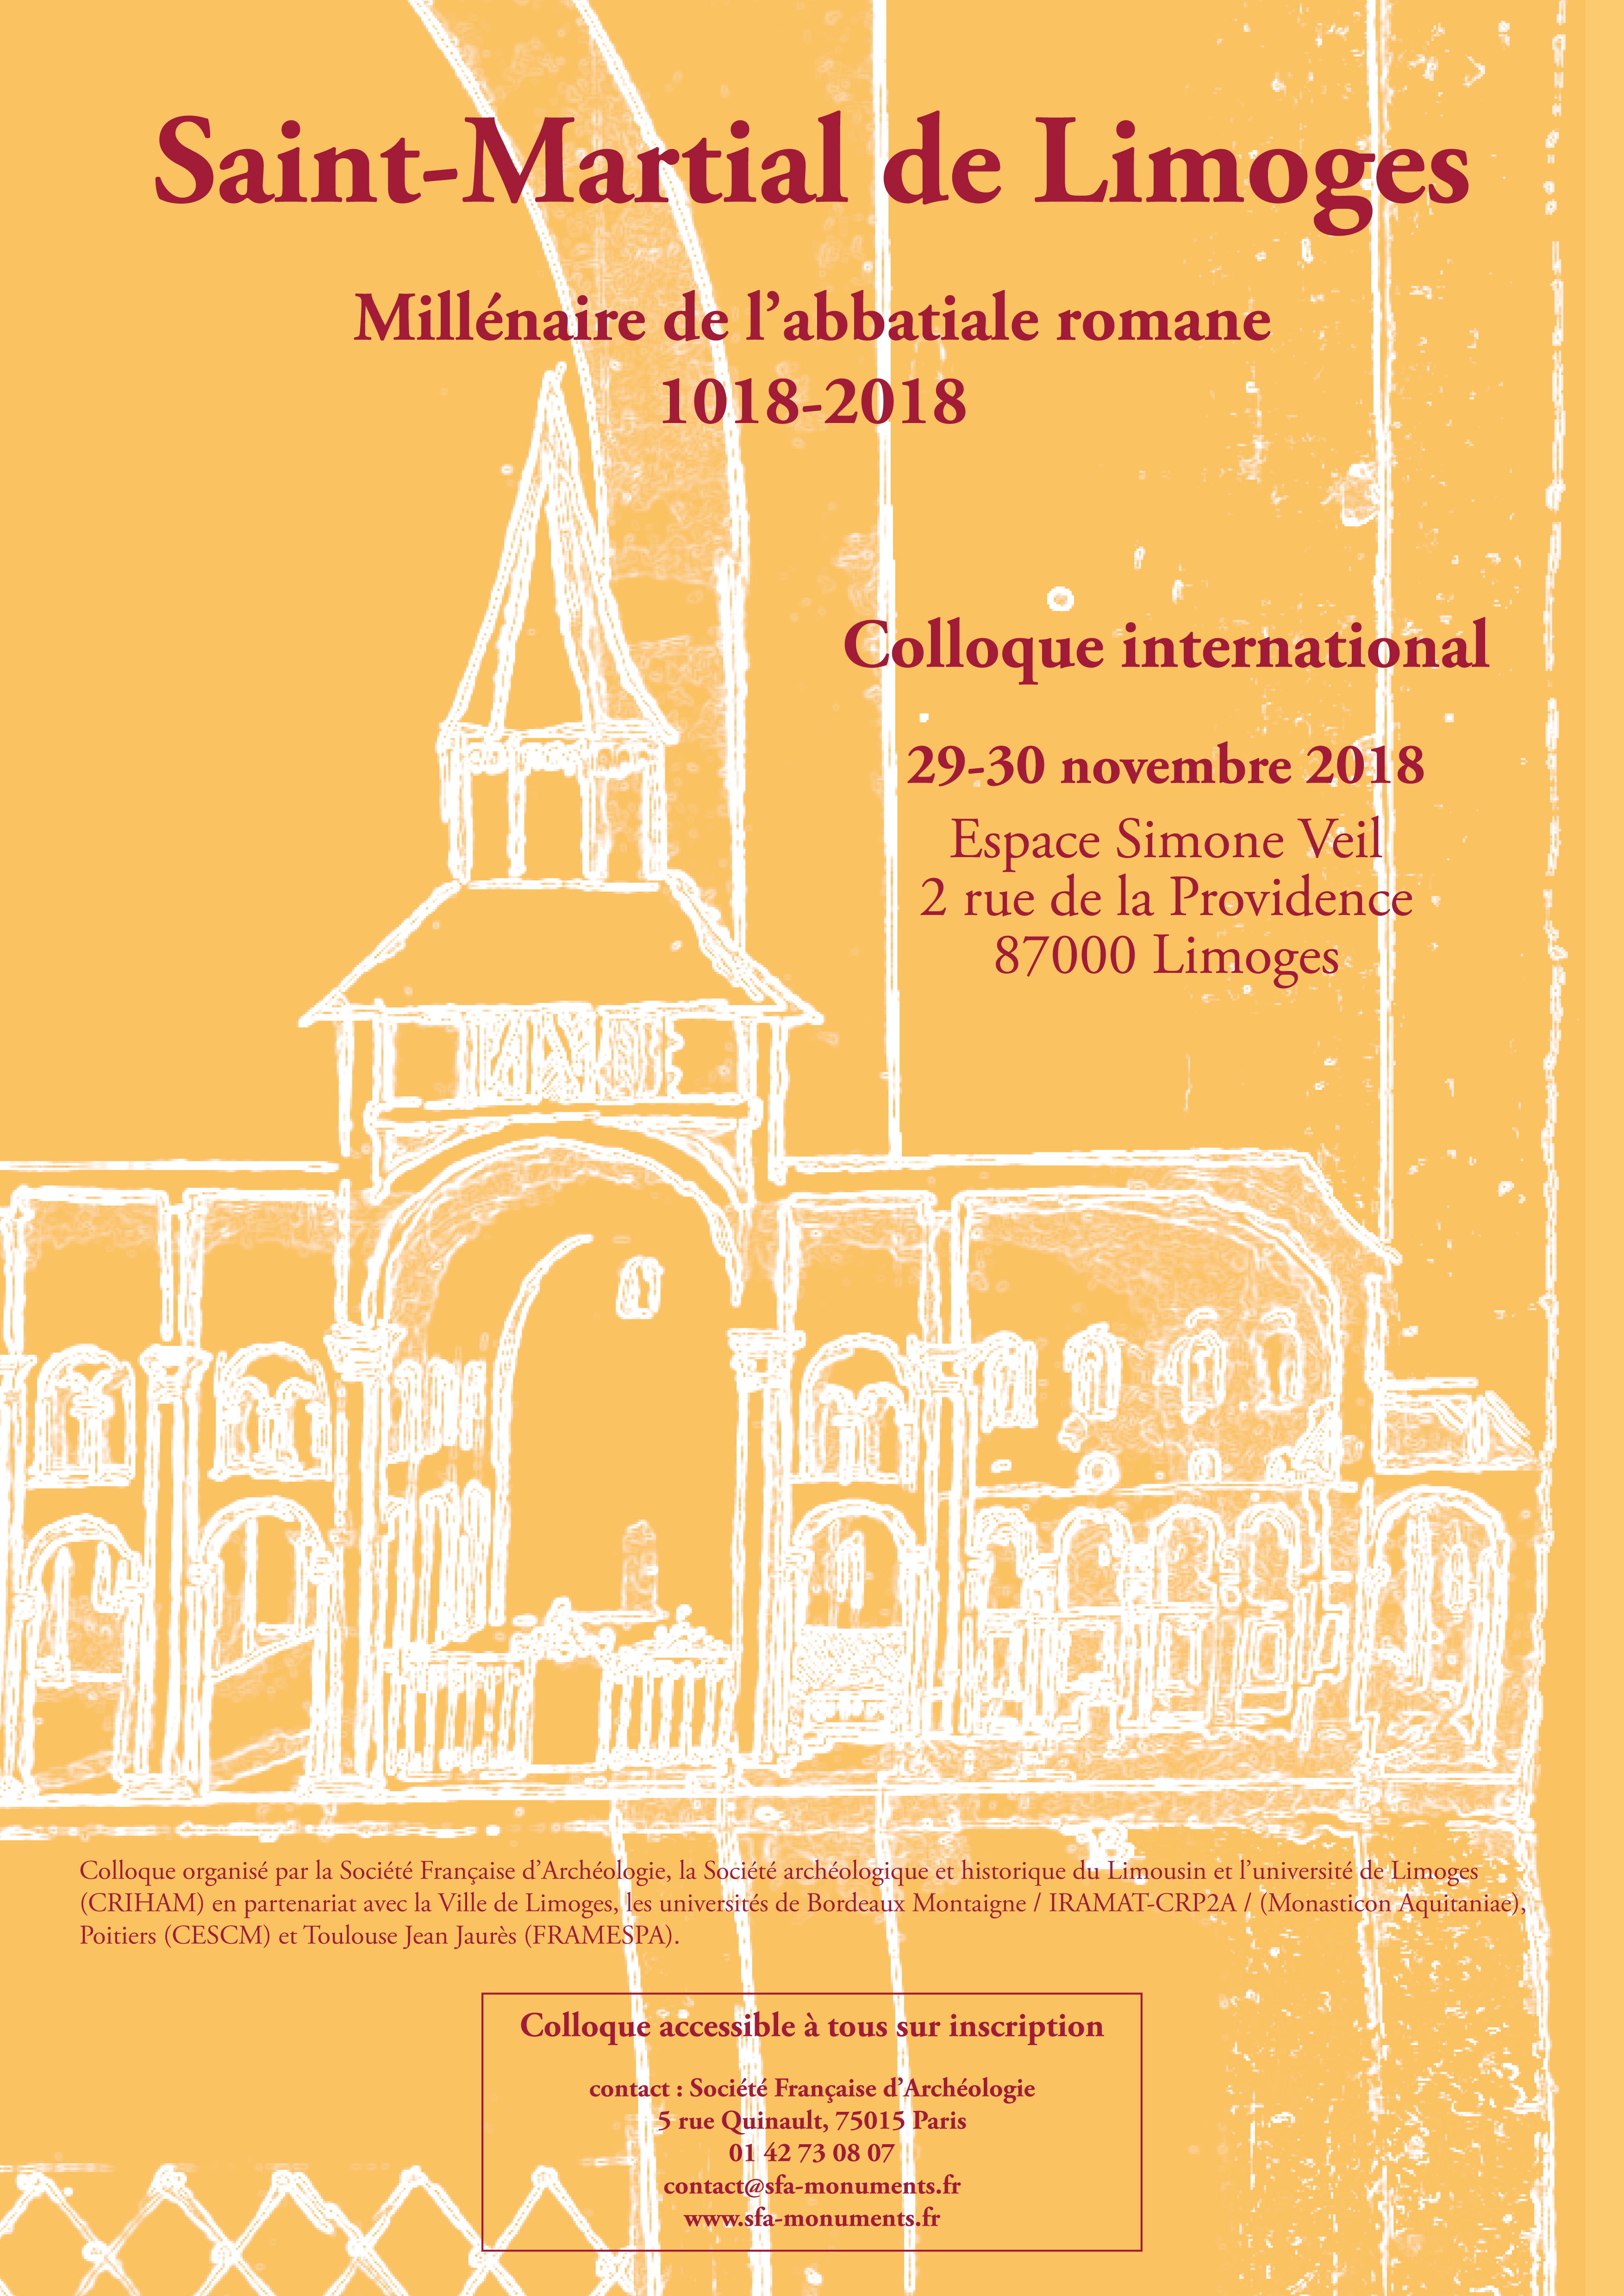 http://www.unilim.fr/criham/wp-content/uploads/sites/23/2018/09/Affiche-Colloque-Saint-Martial.jpg